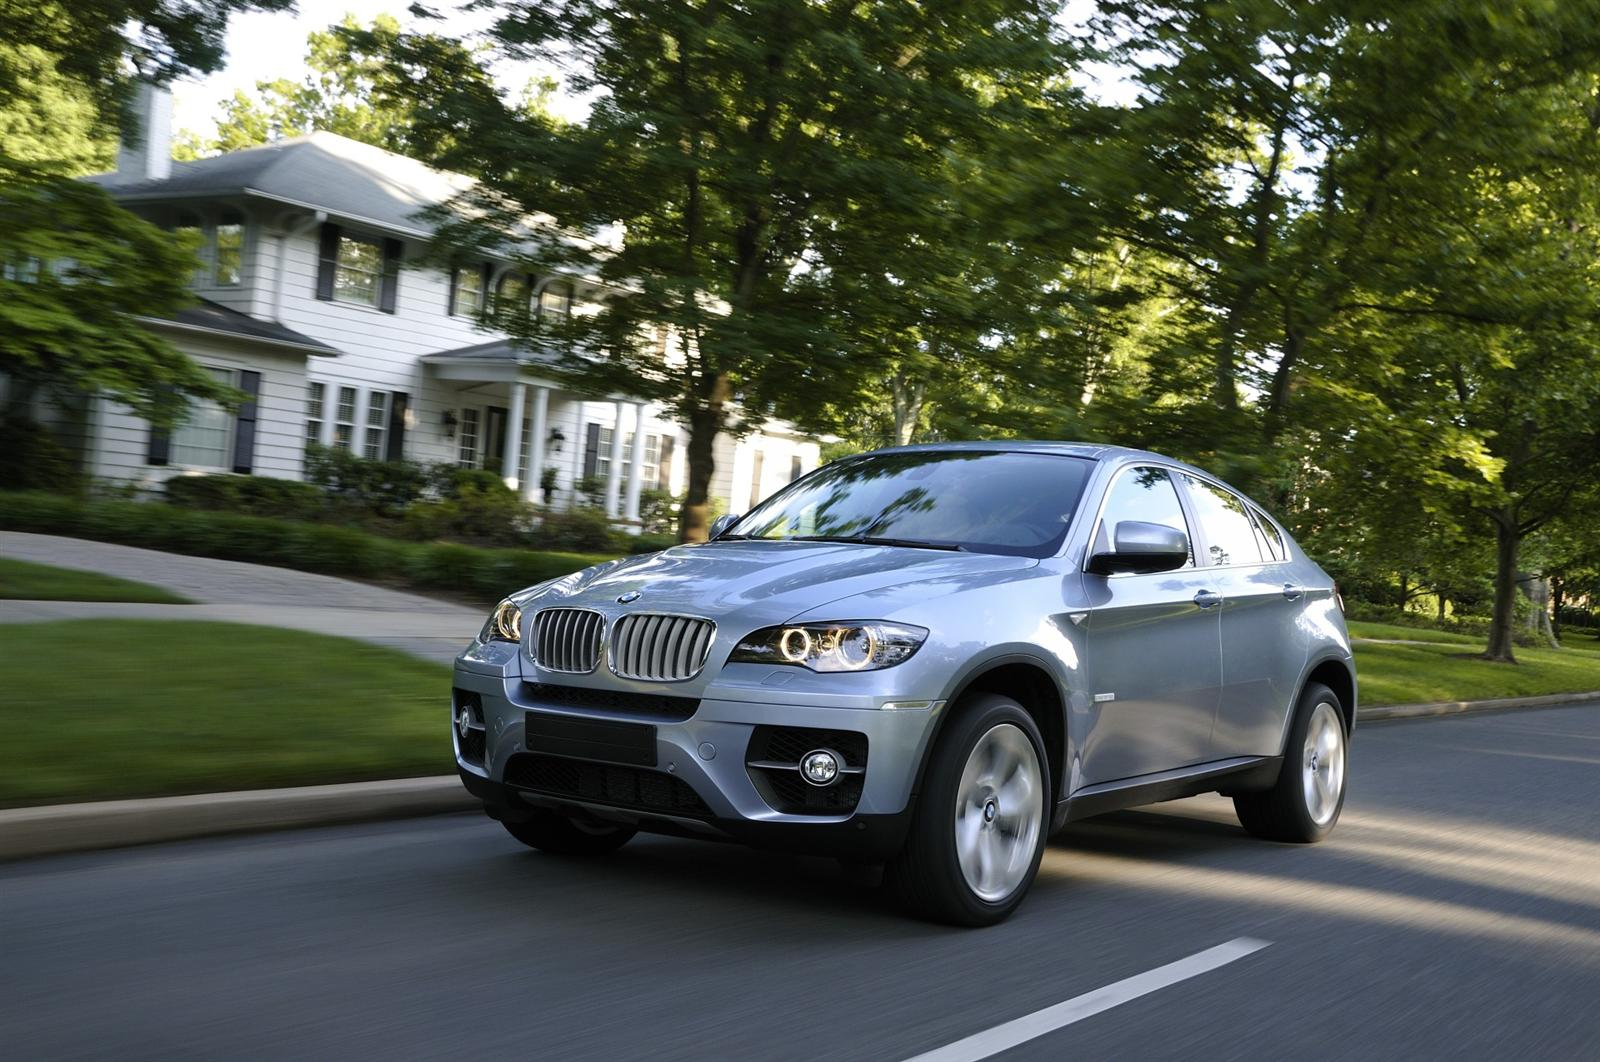 2019 BMW X6 ActiveHybrid Concept photo - 2